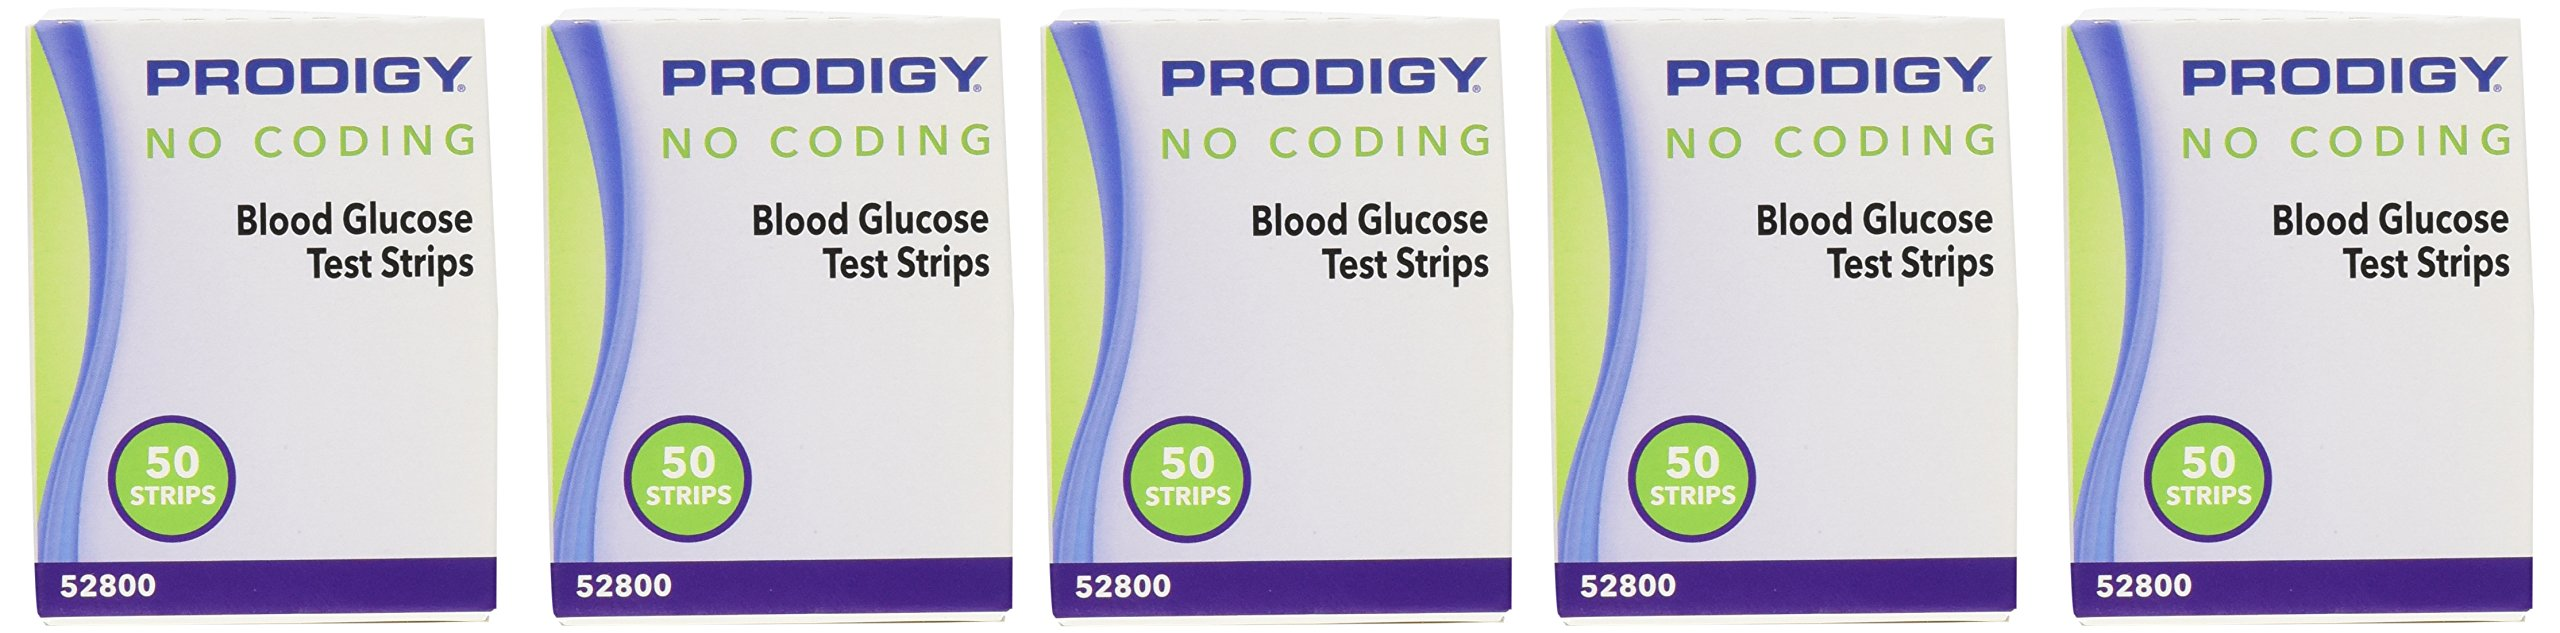 Prodigy Bundle Deal Savings 250 Ct Test Strips by Prodigy